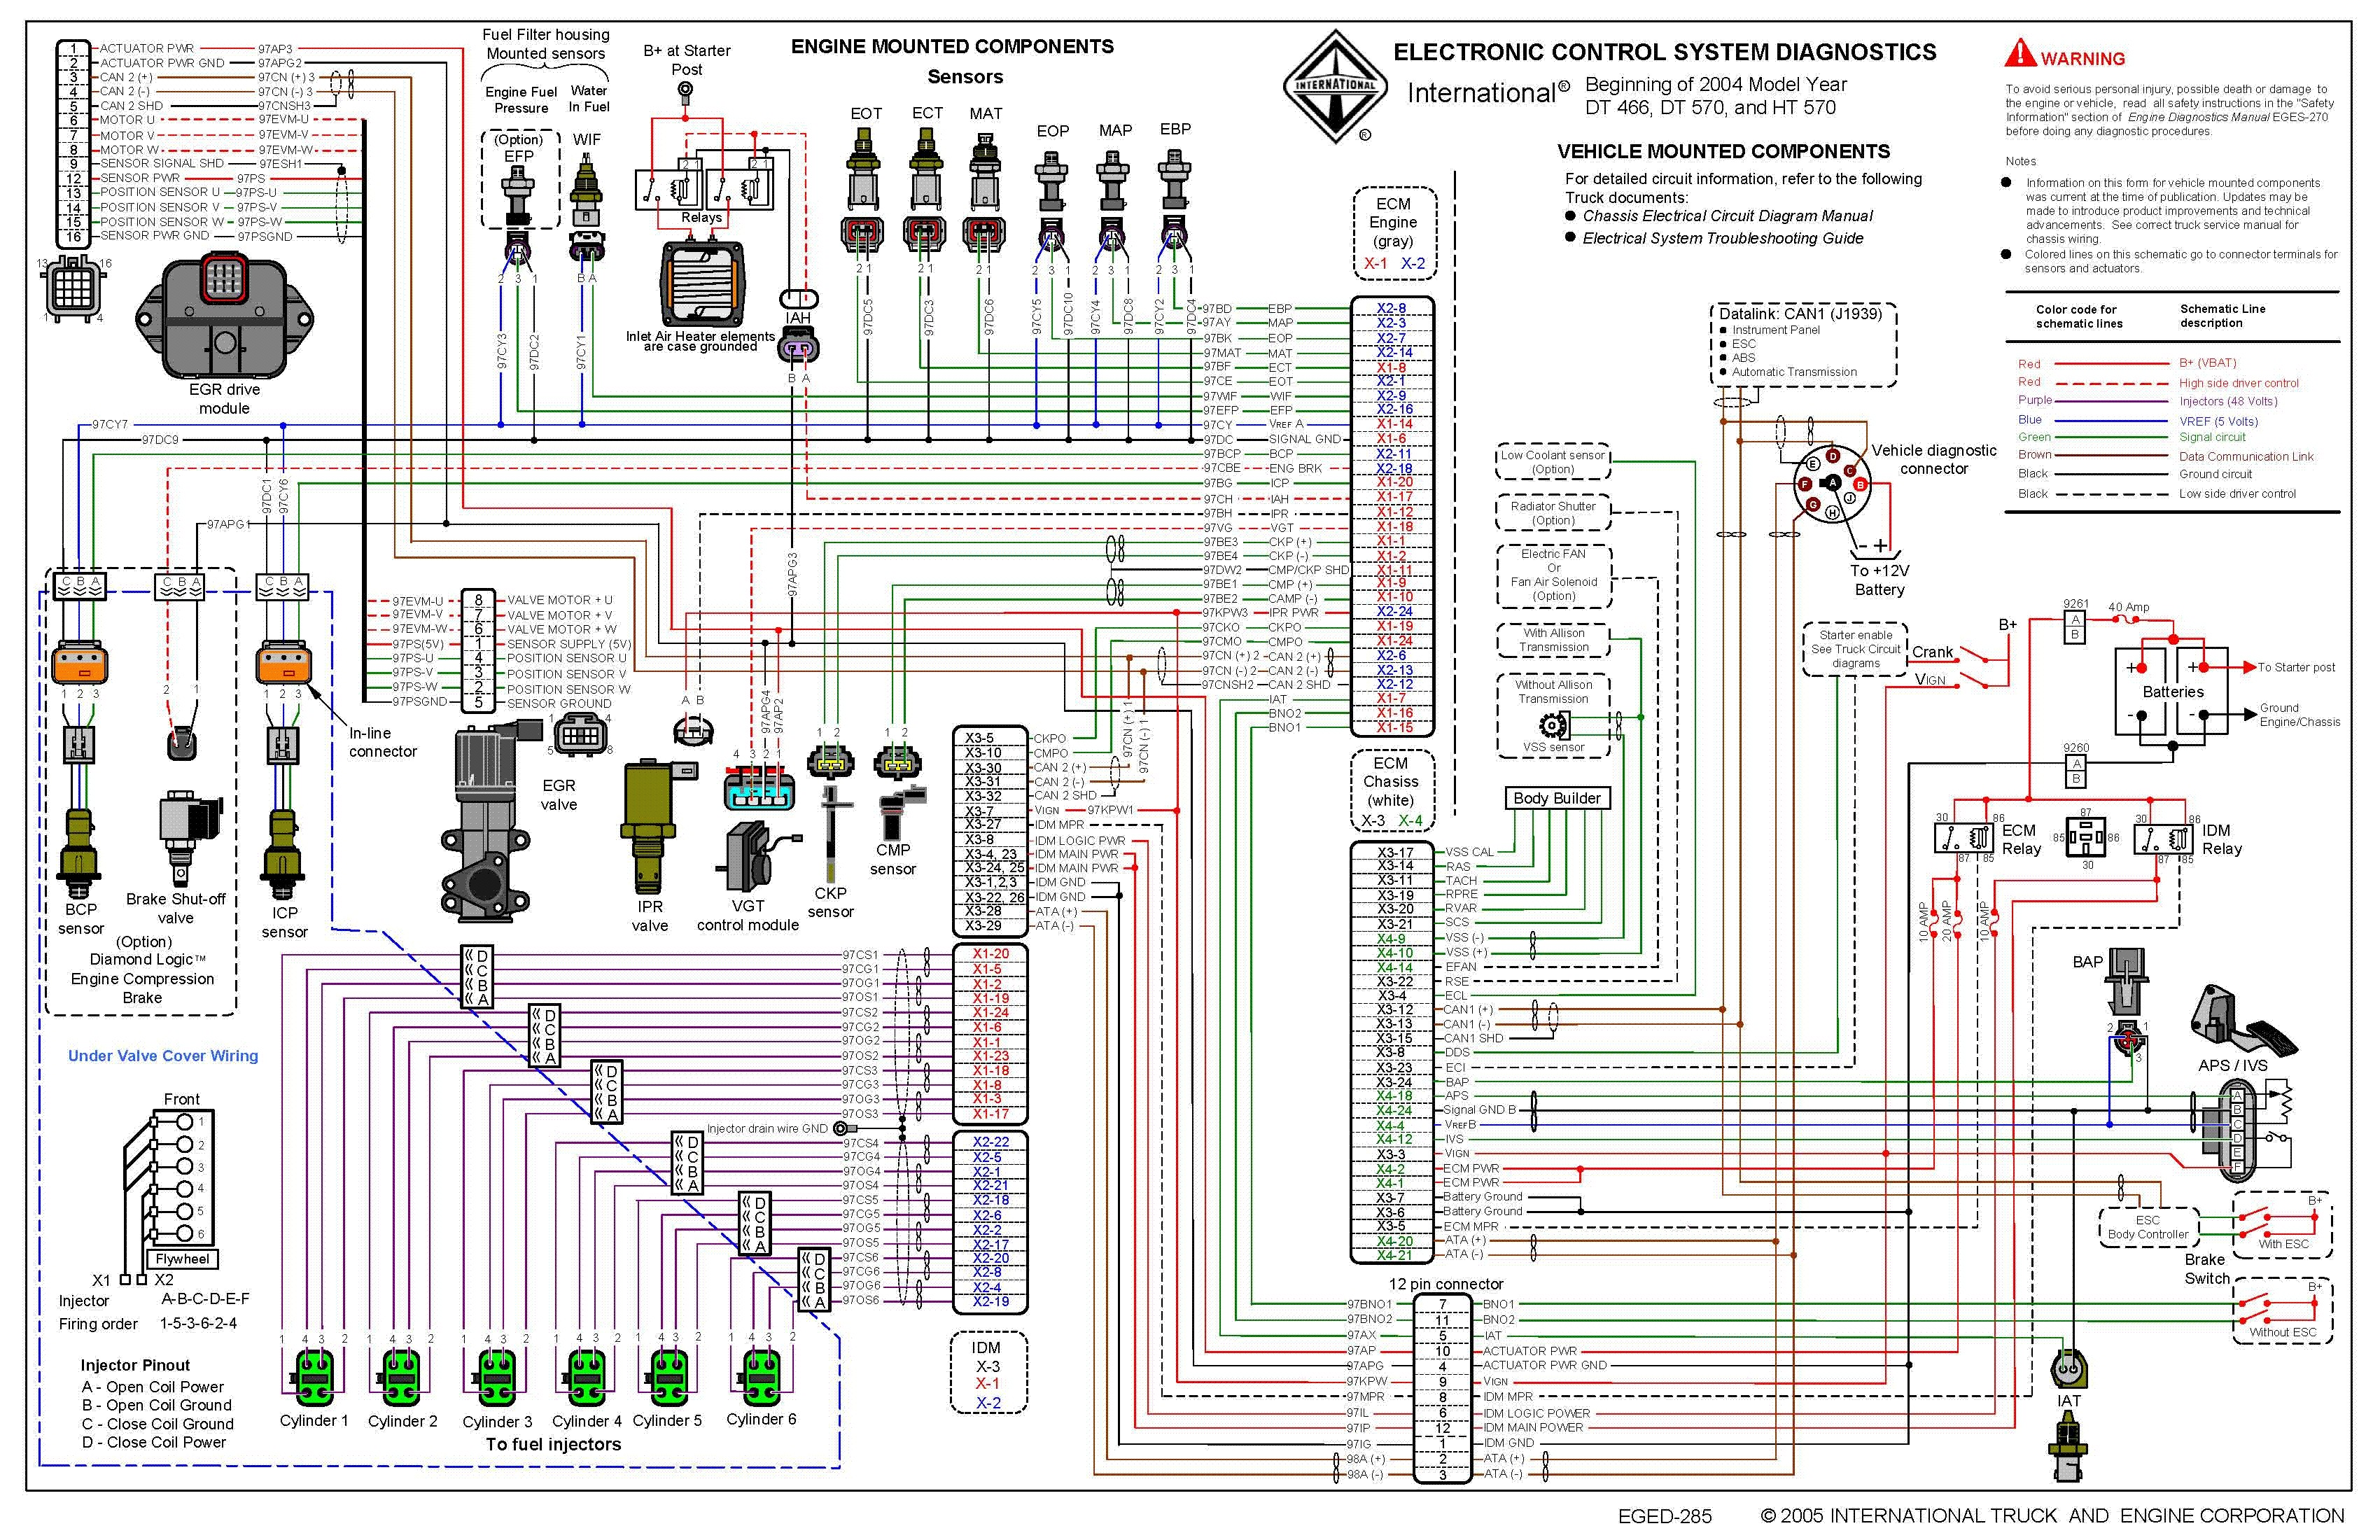 1999 nissan altima egr system diagram also international dt466 Farmall Wiring Diagram